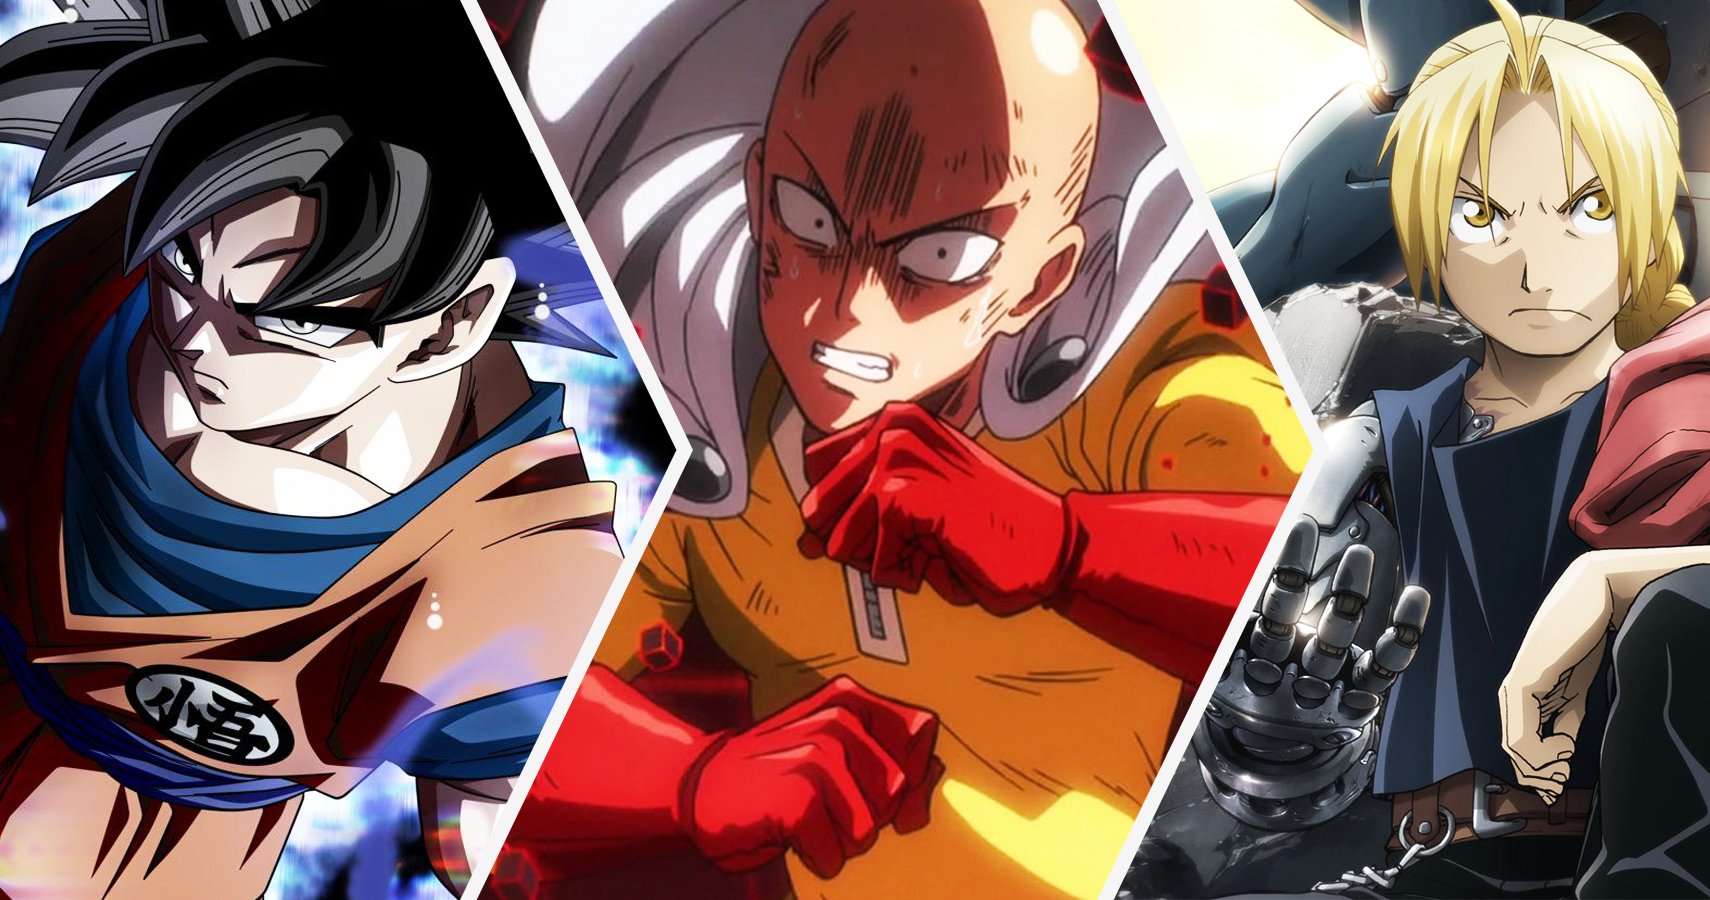 Anime Character: Top 25 Most Powerful Anime Characters Of All-Time, Ranked